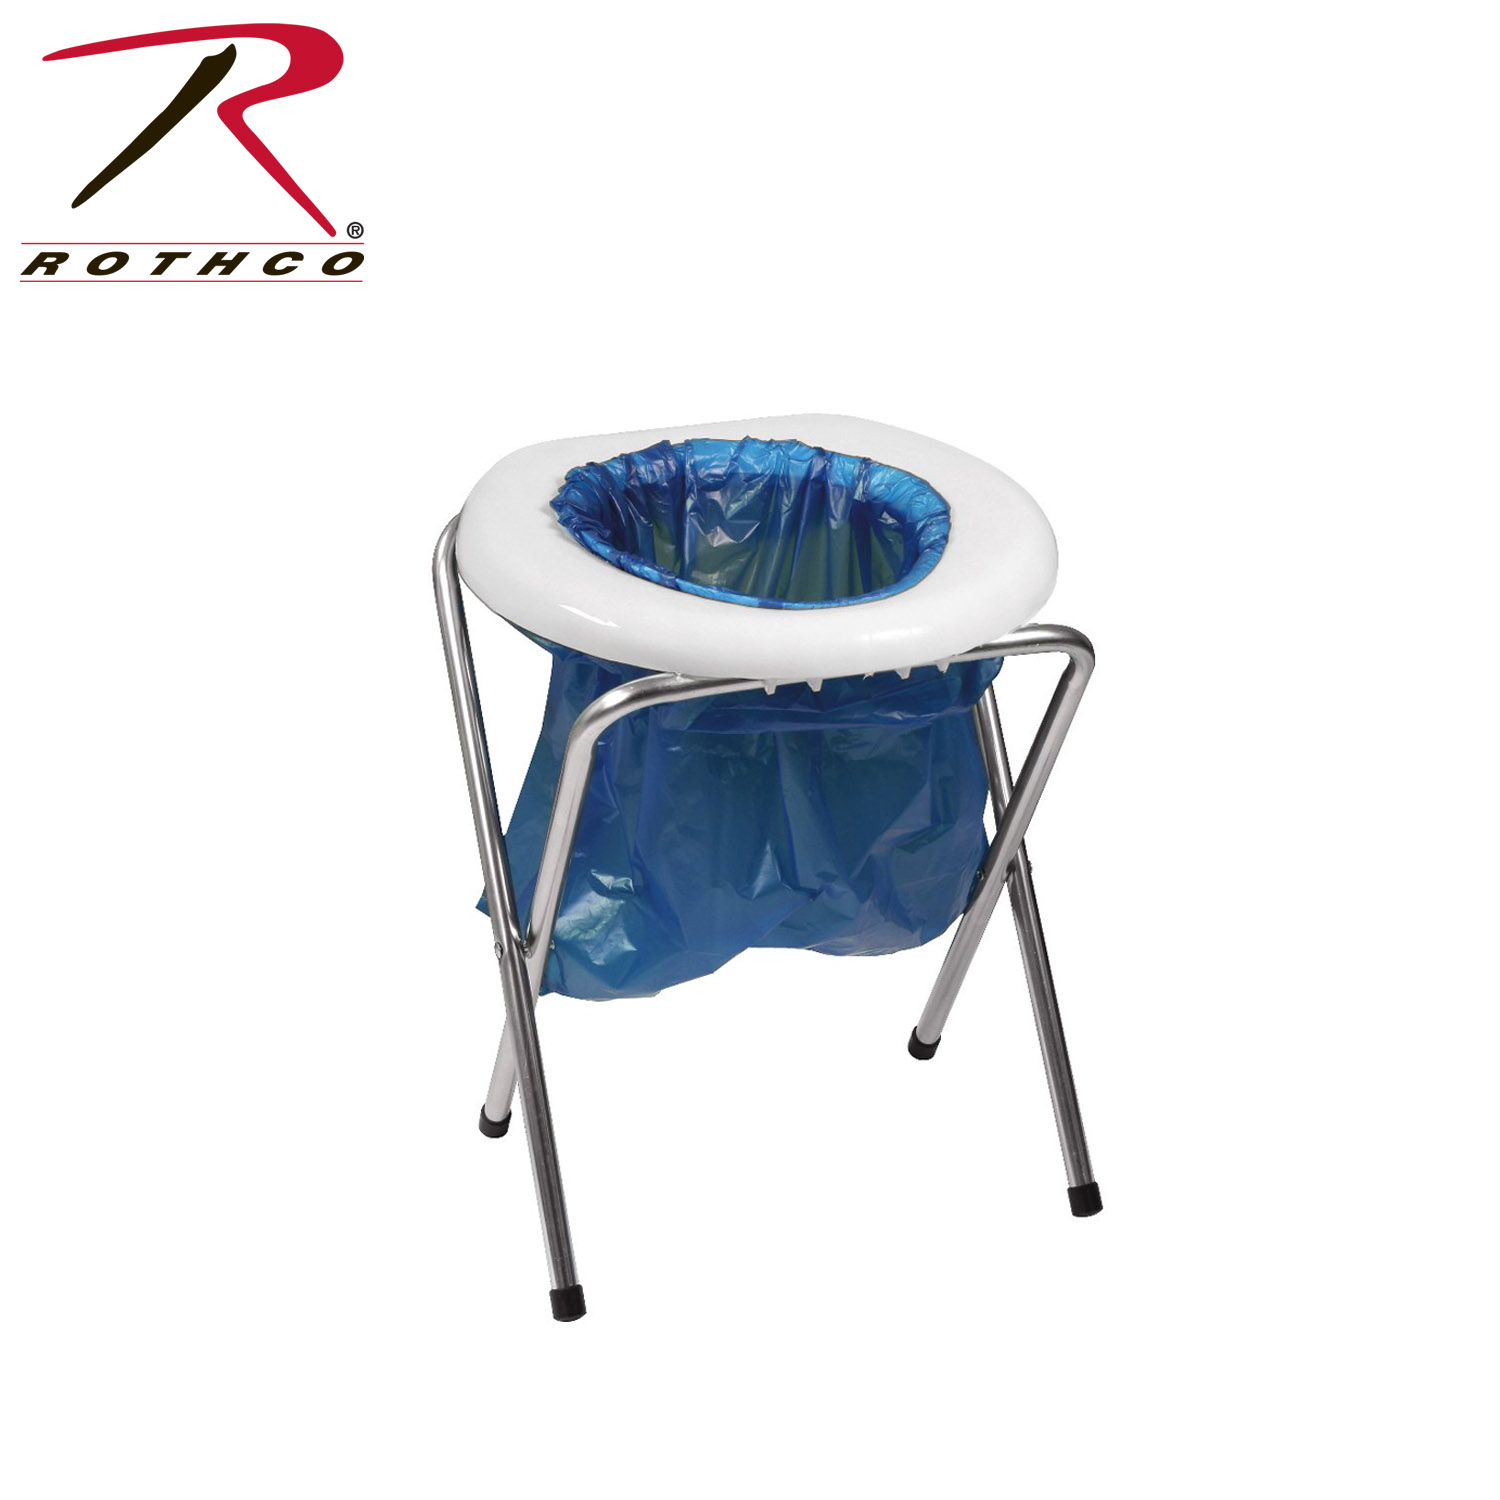 Camping Toilet Rothco Portable Camp Toilet